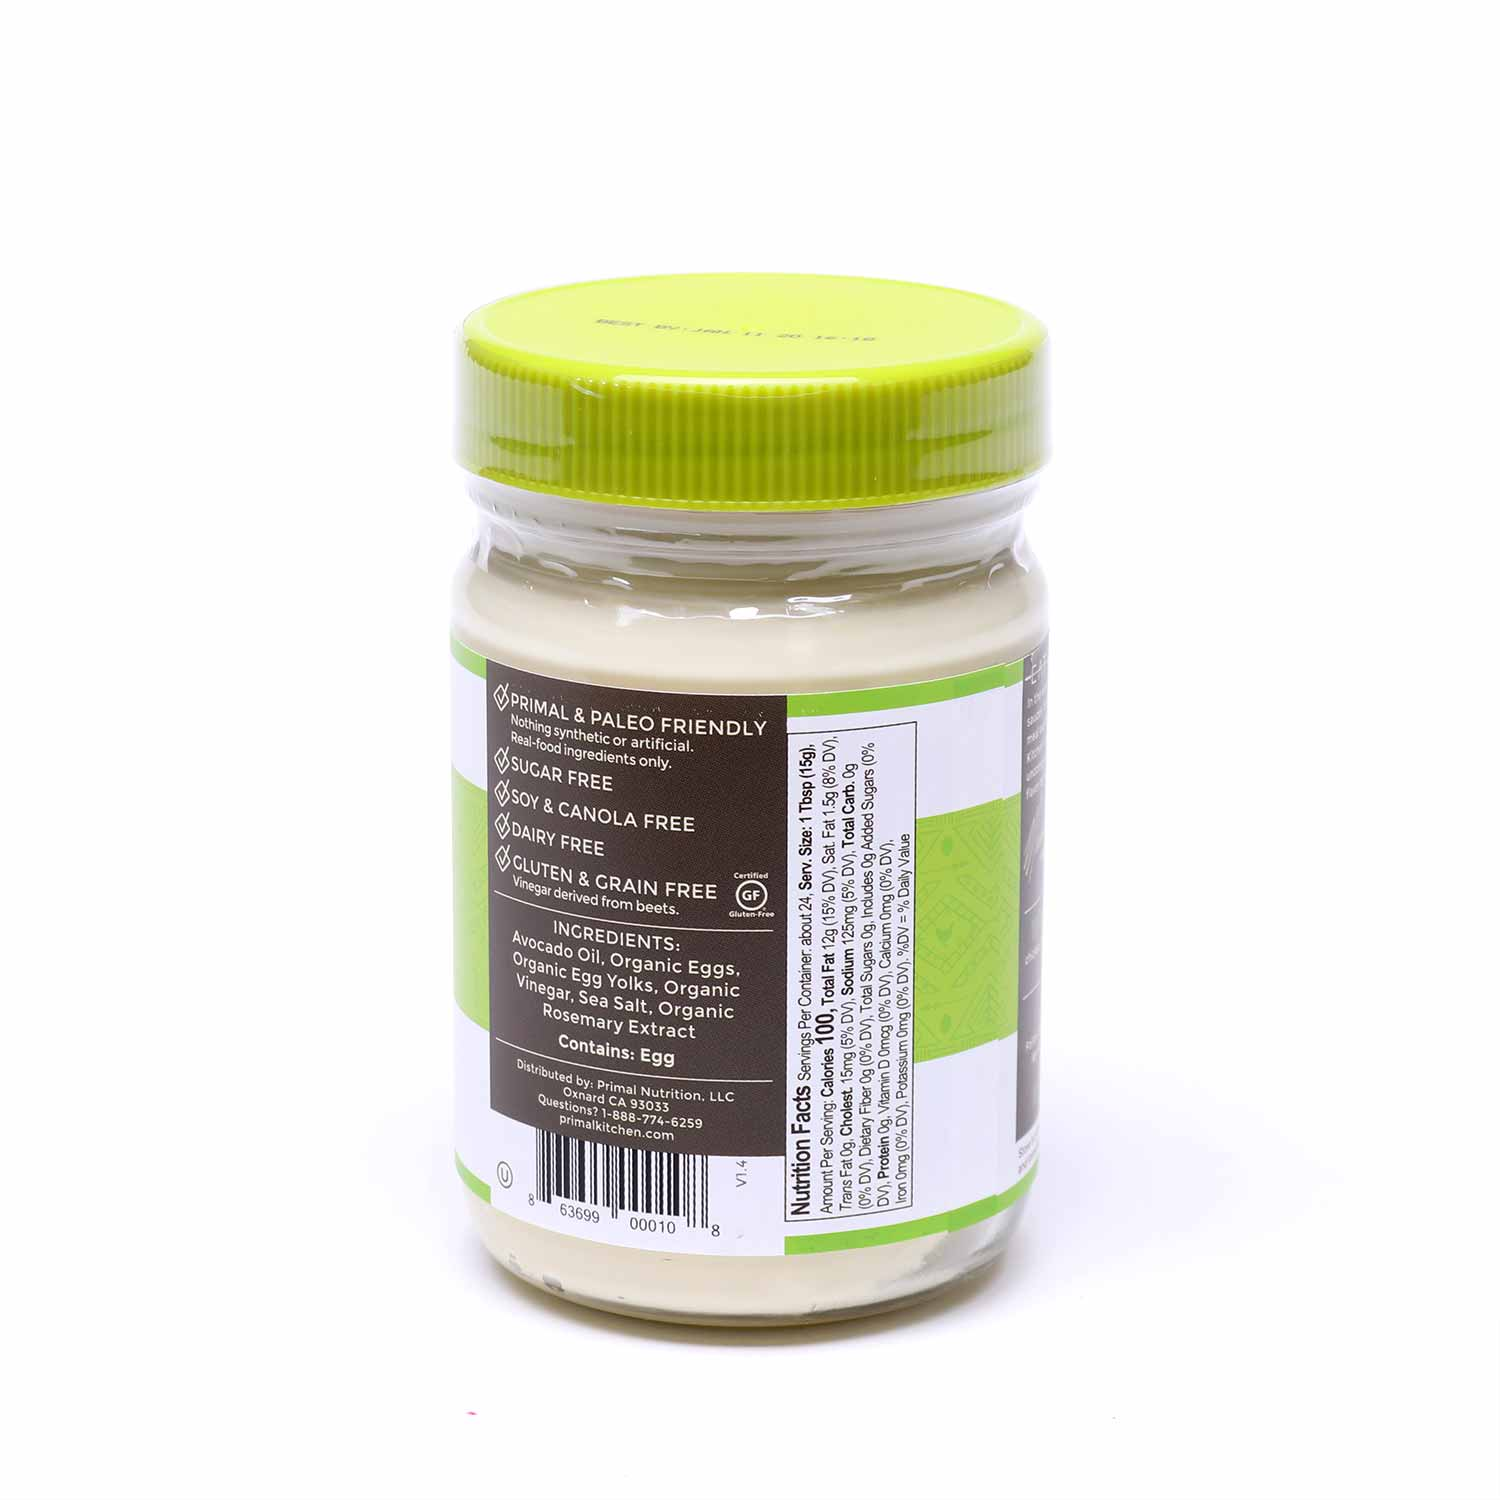 Mayo with Avocado Oil-Organic